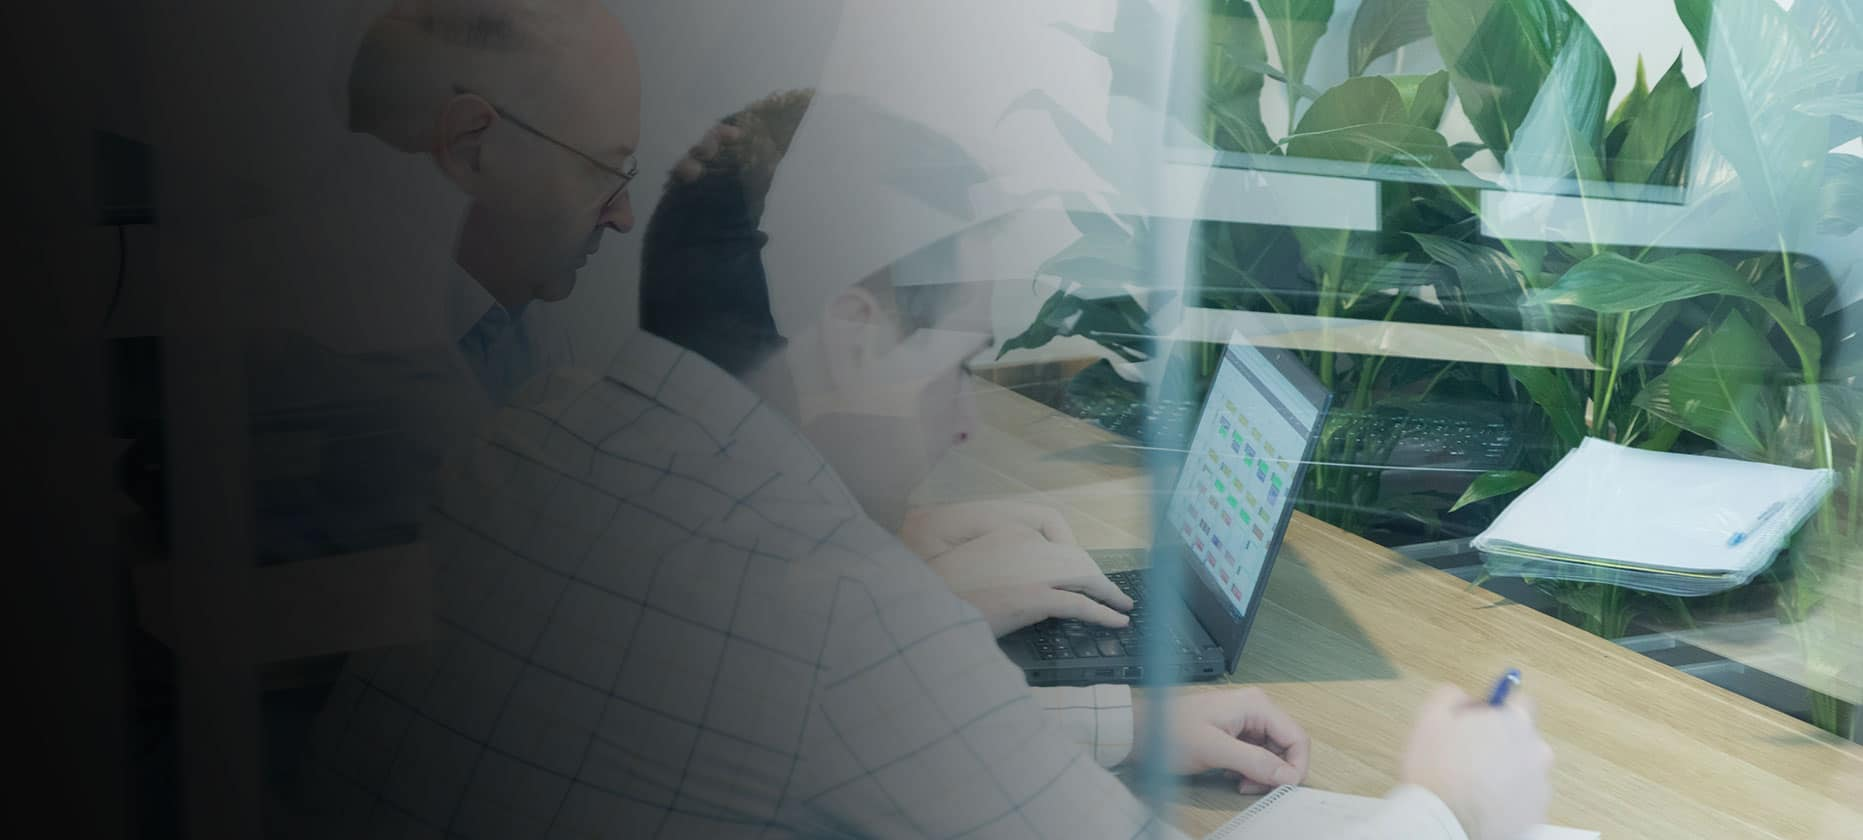 Two people working on a project using a laptop: Profisee is a master data management software